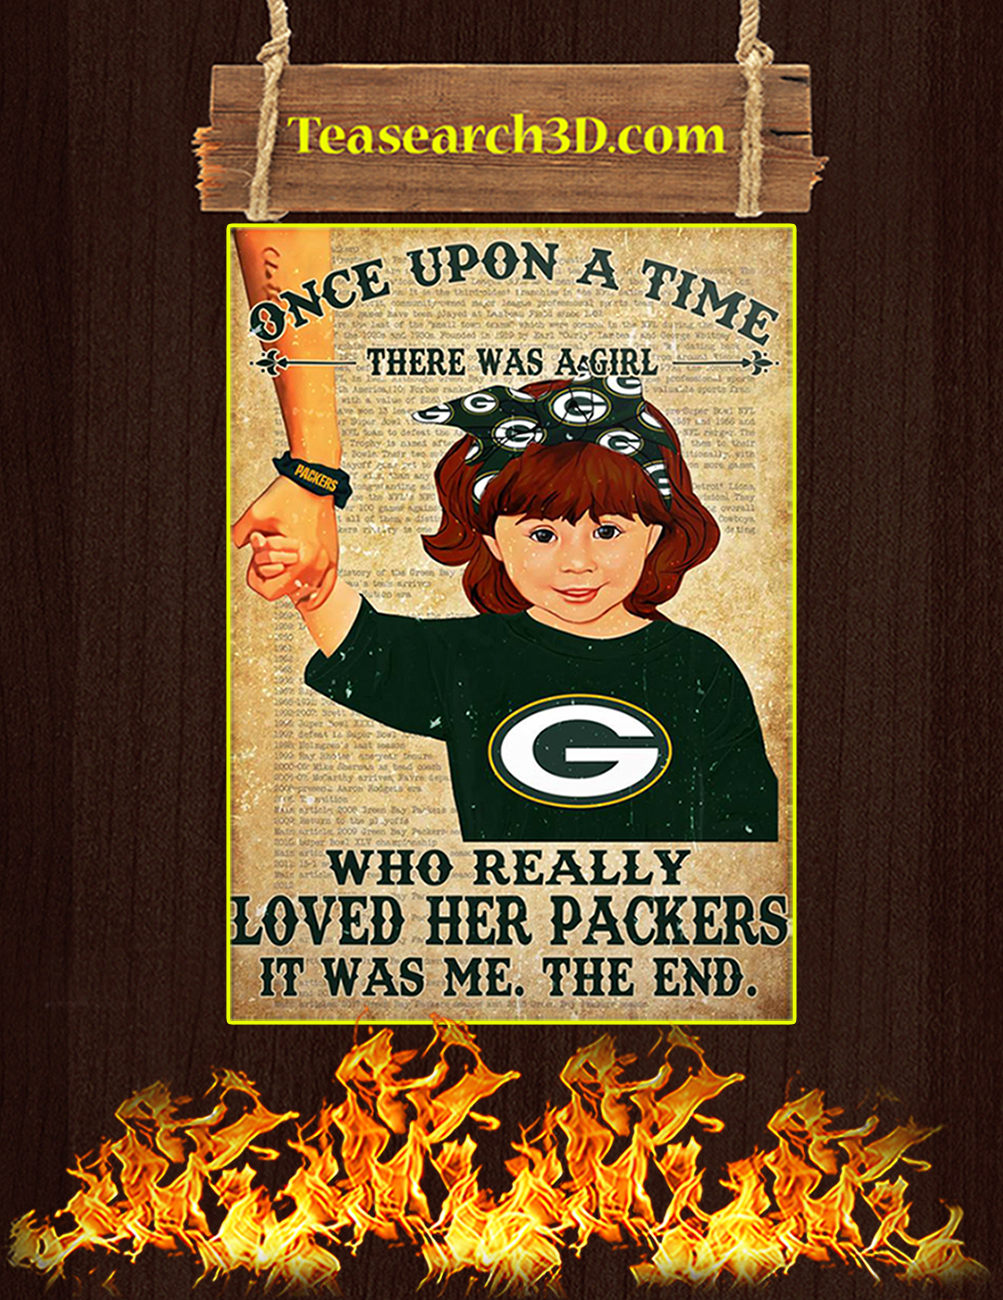 Once upon a time there was a girl who really loved her packers poster 4